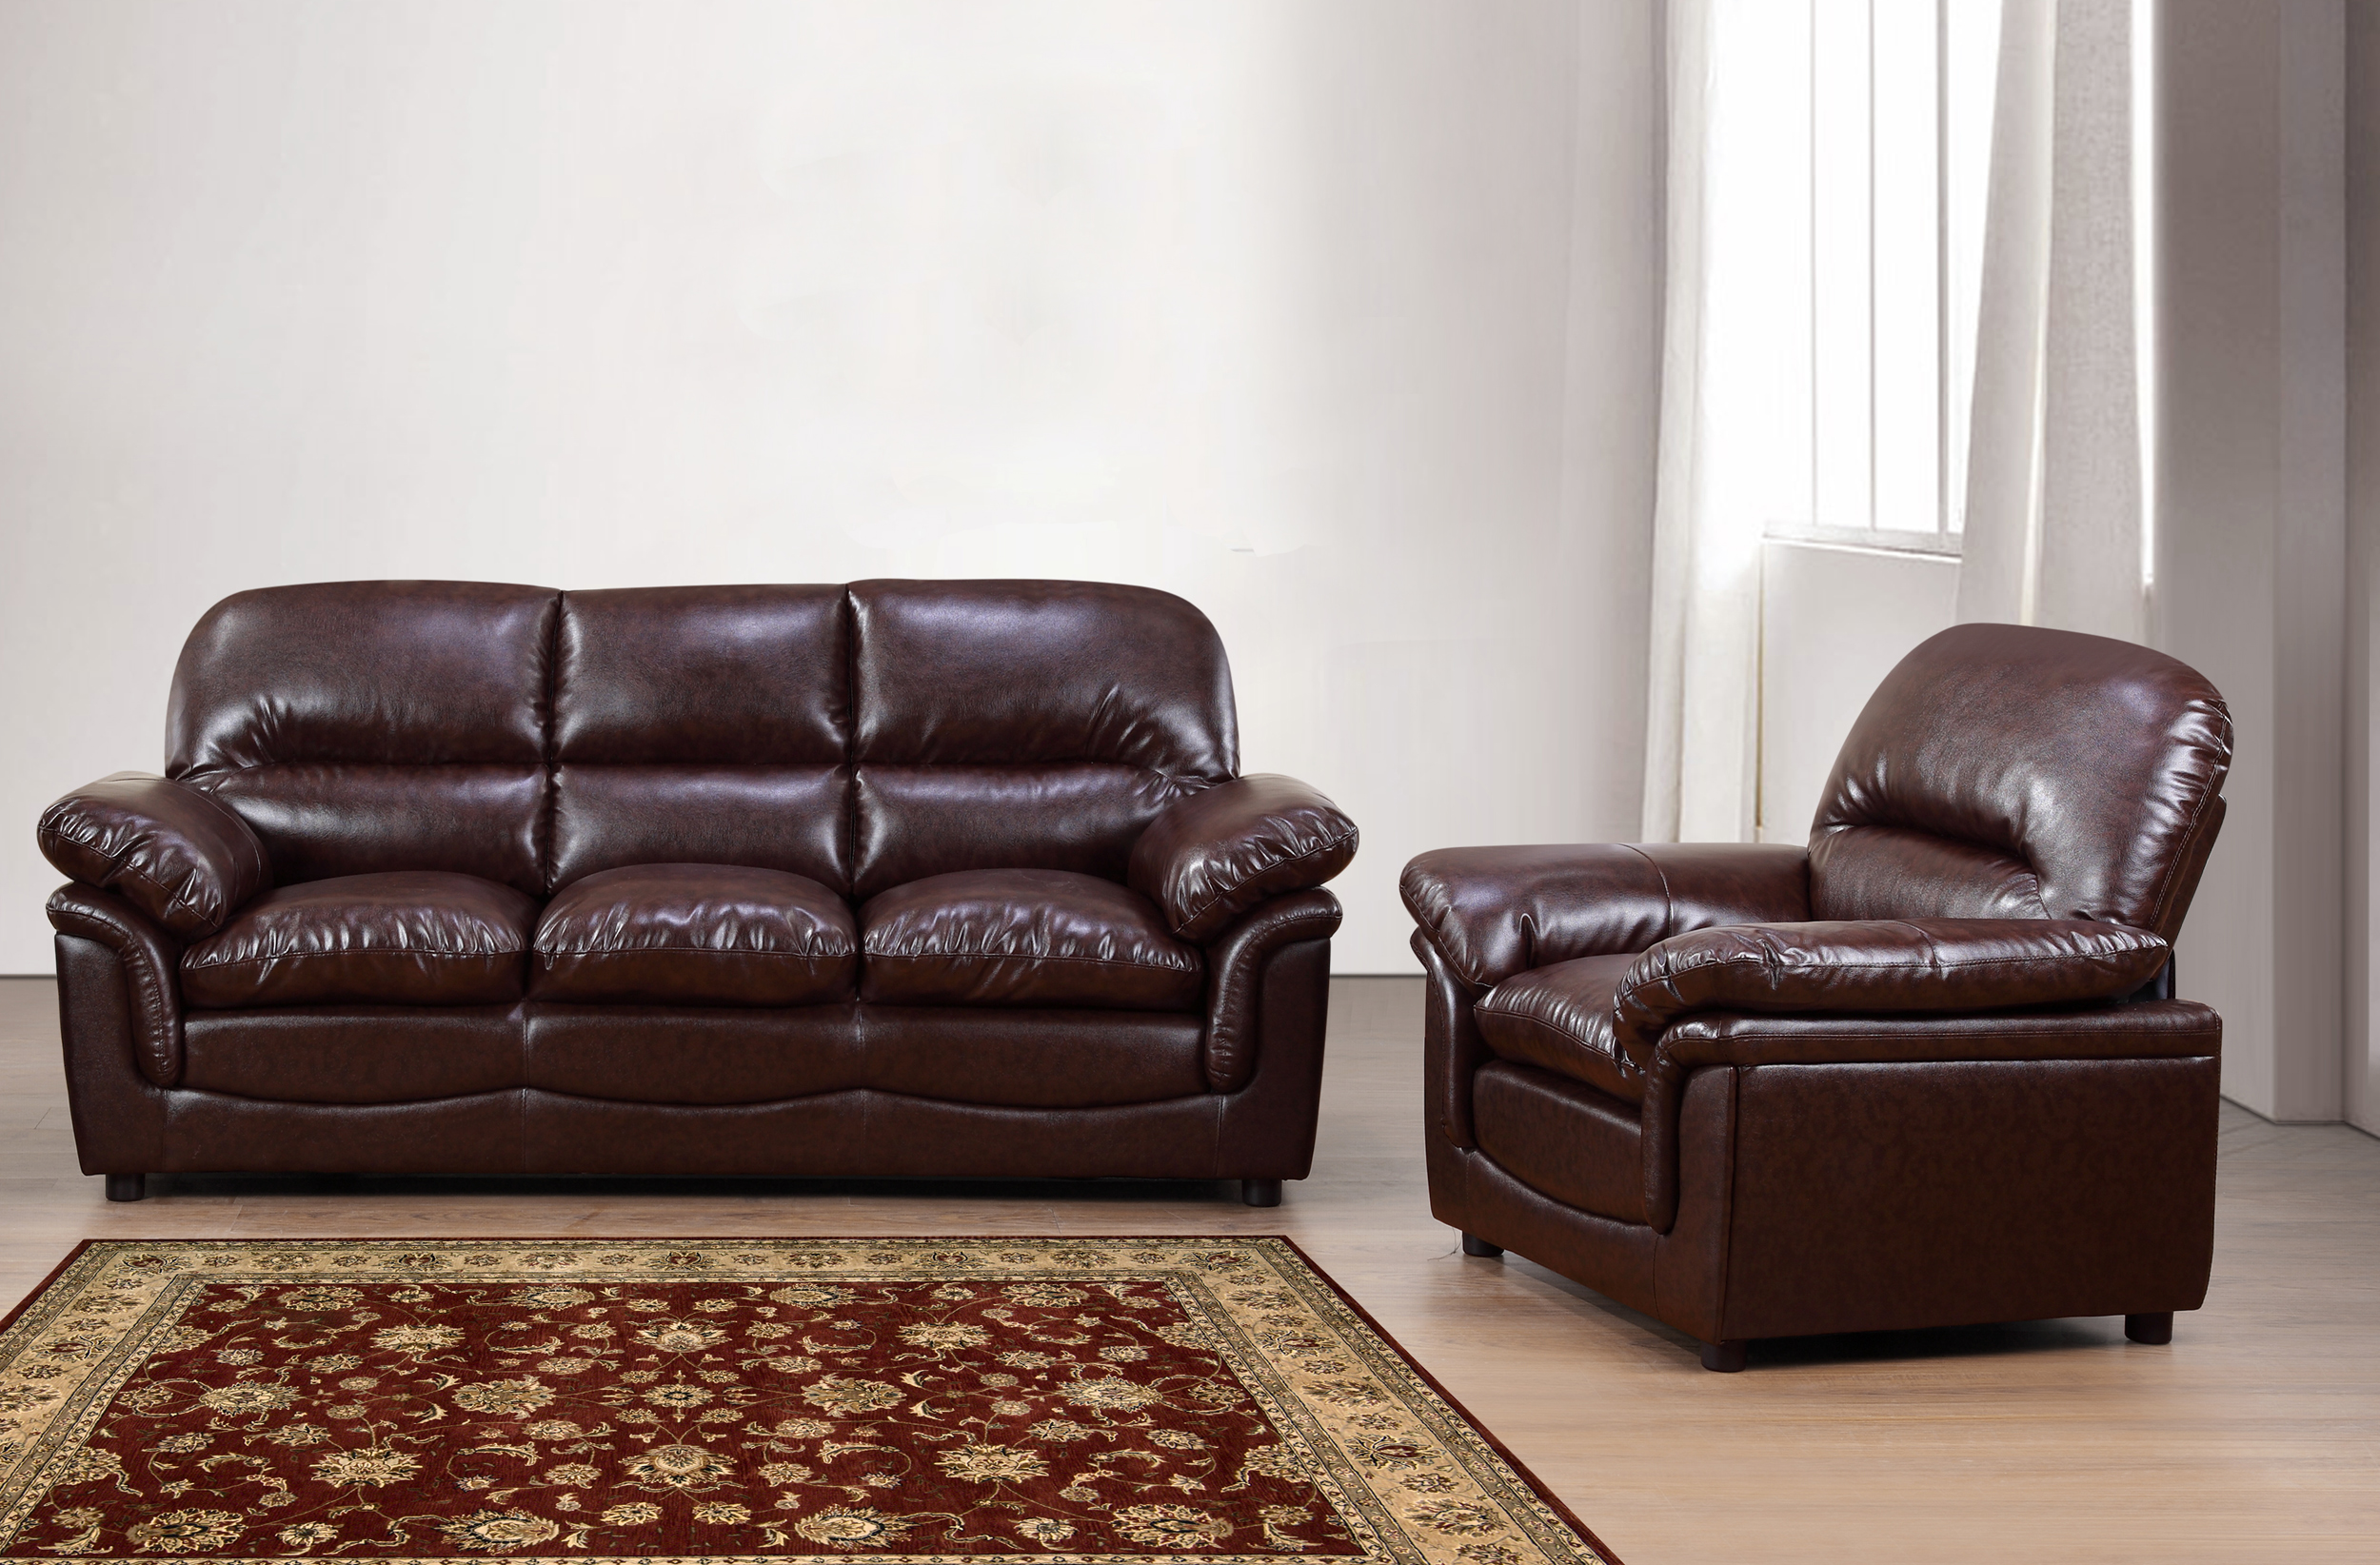 New Modern Verona Bonded Leather Sofa Suite In